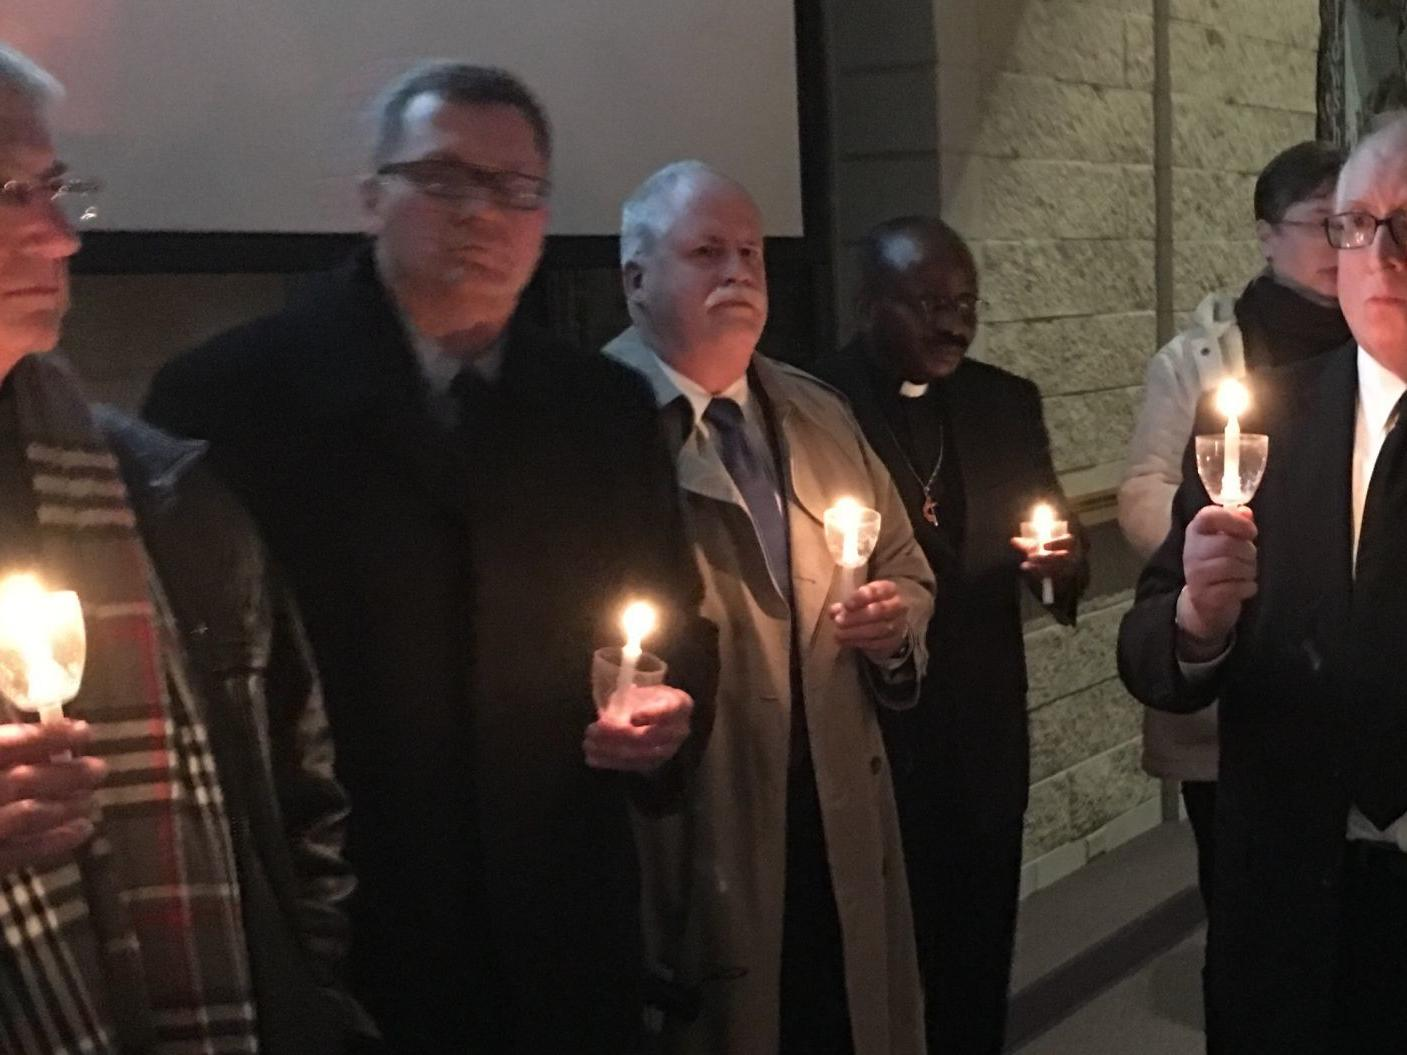 La Crosse rabbi at vigil for slain Jews: It's happening to all of us |  Local News | lacrossetribune.com